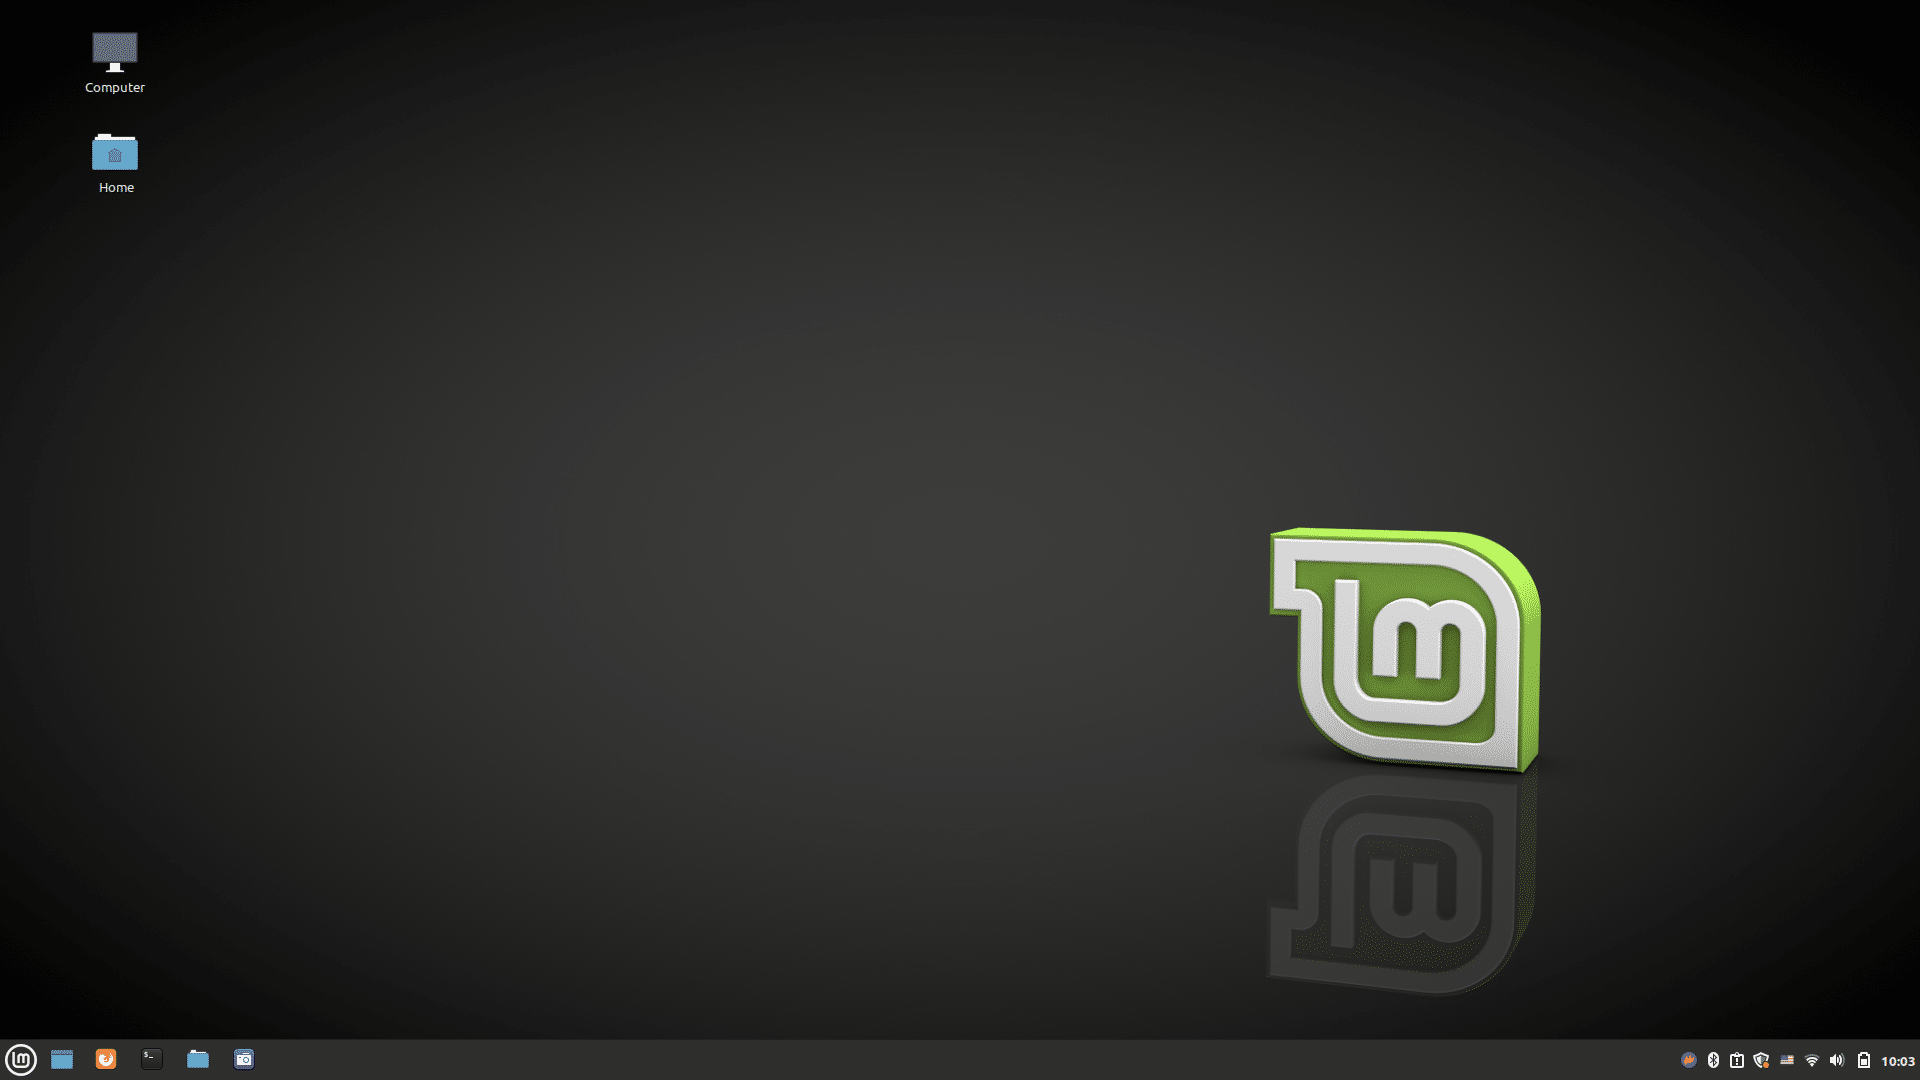 Linux Mint 20 5 July 17, 2020